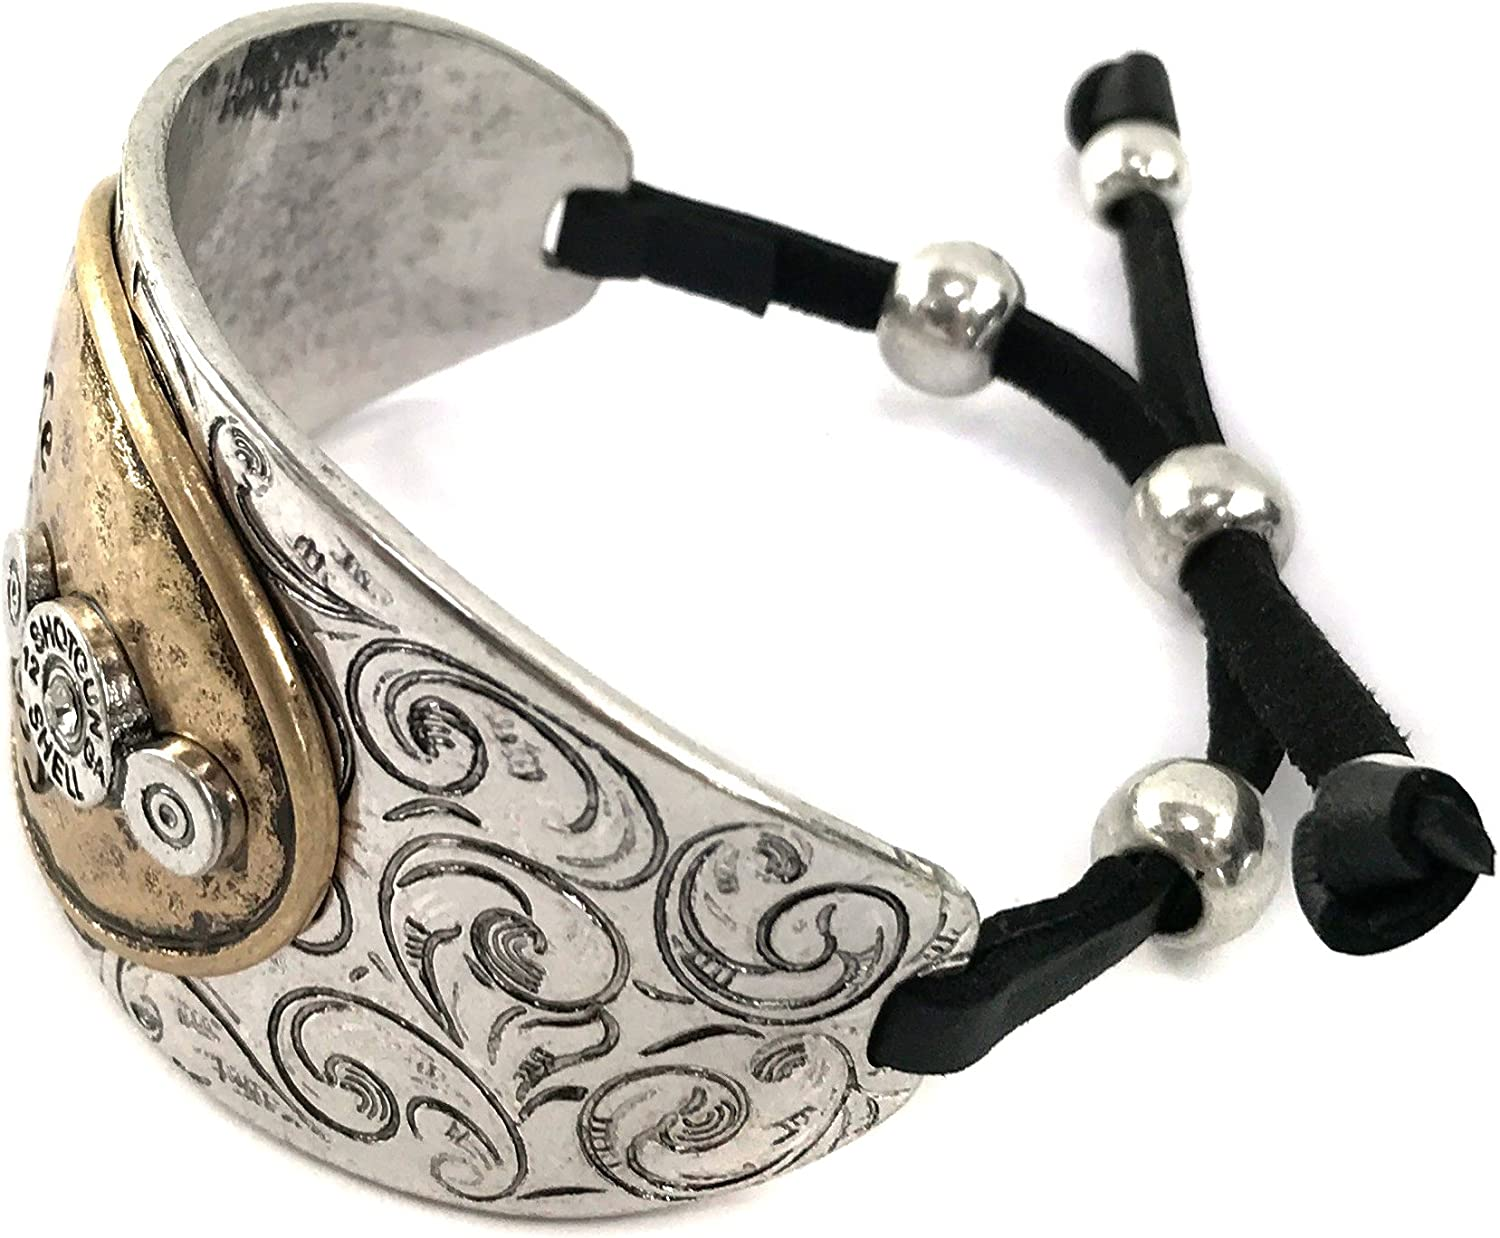 Western Peak Hammered Plate Hide Your Crazy Act Like a Lady 12 Gauge Shotgun Shell Leather Cuff Bracelet Necklace